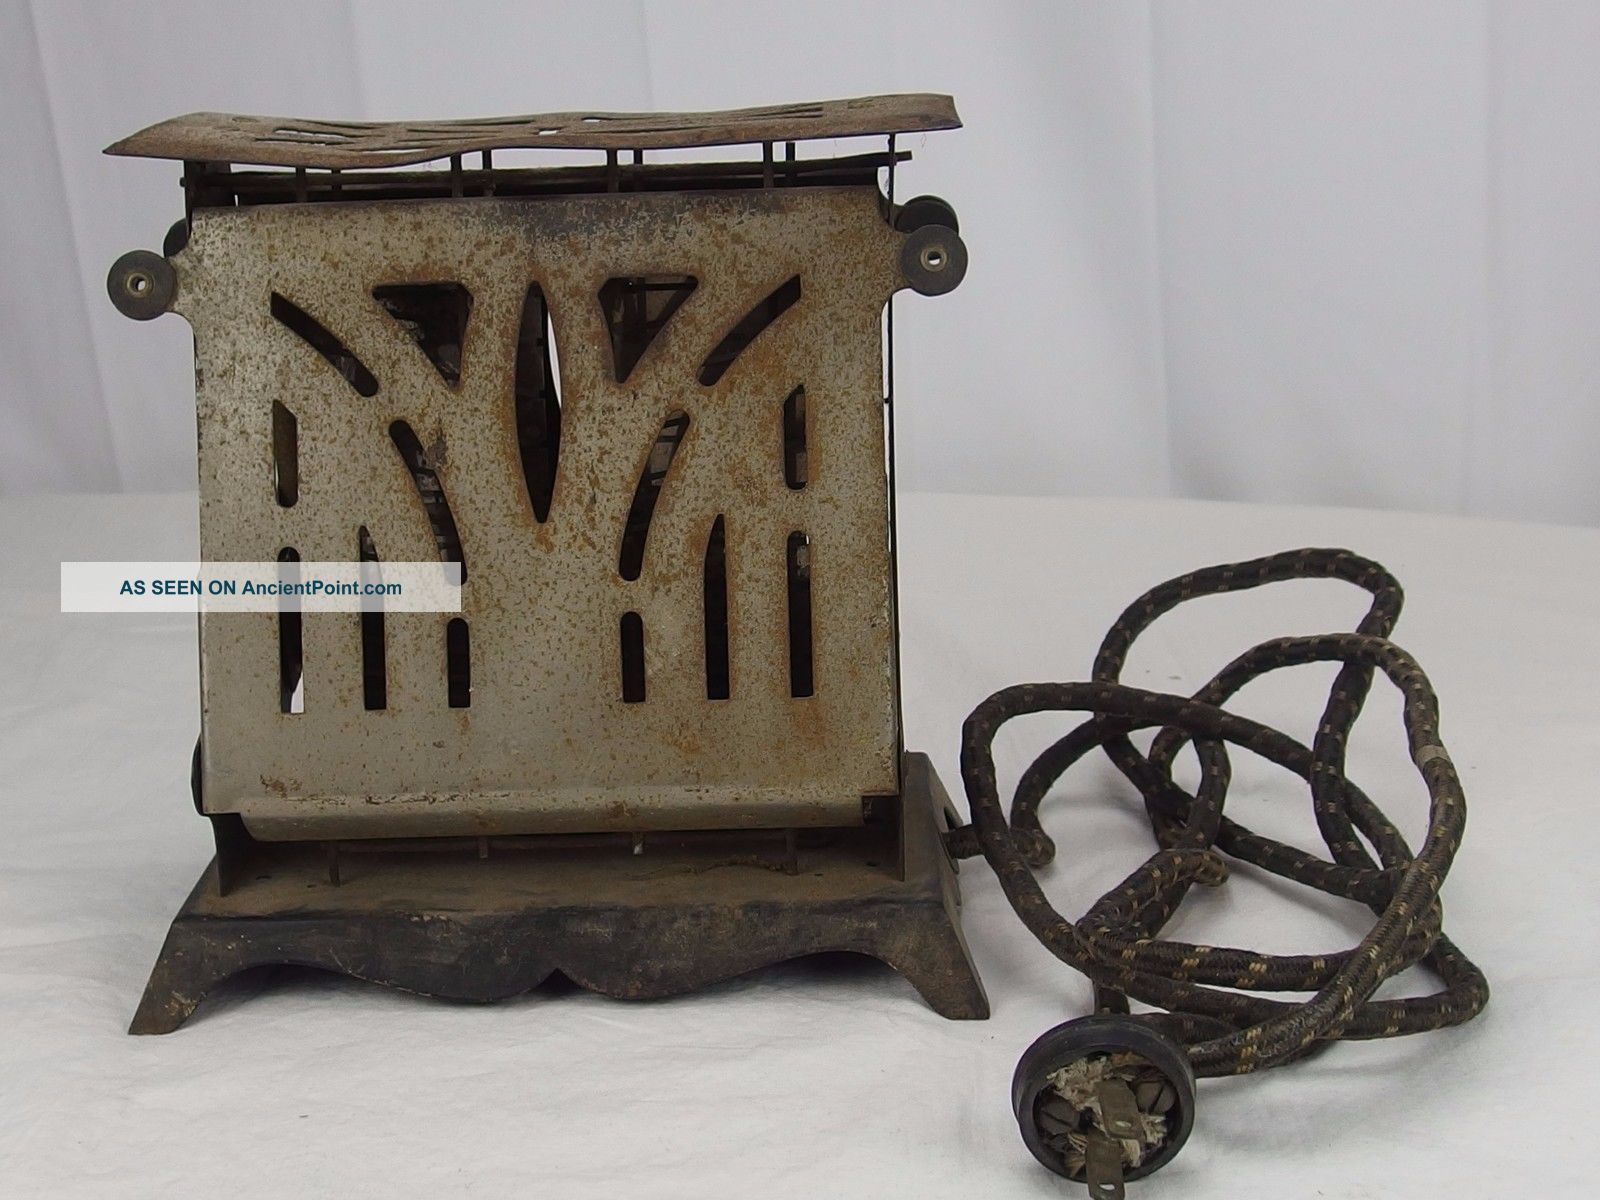 Antique Electrahot Toaster Style 502s Cloth Cord 2 Drop Side Toasters photo